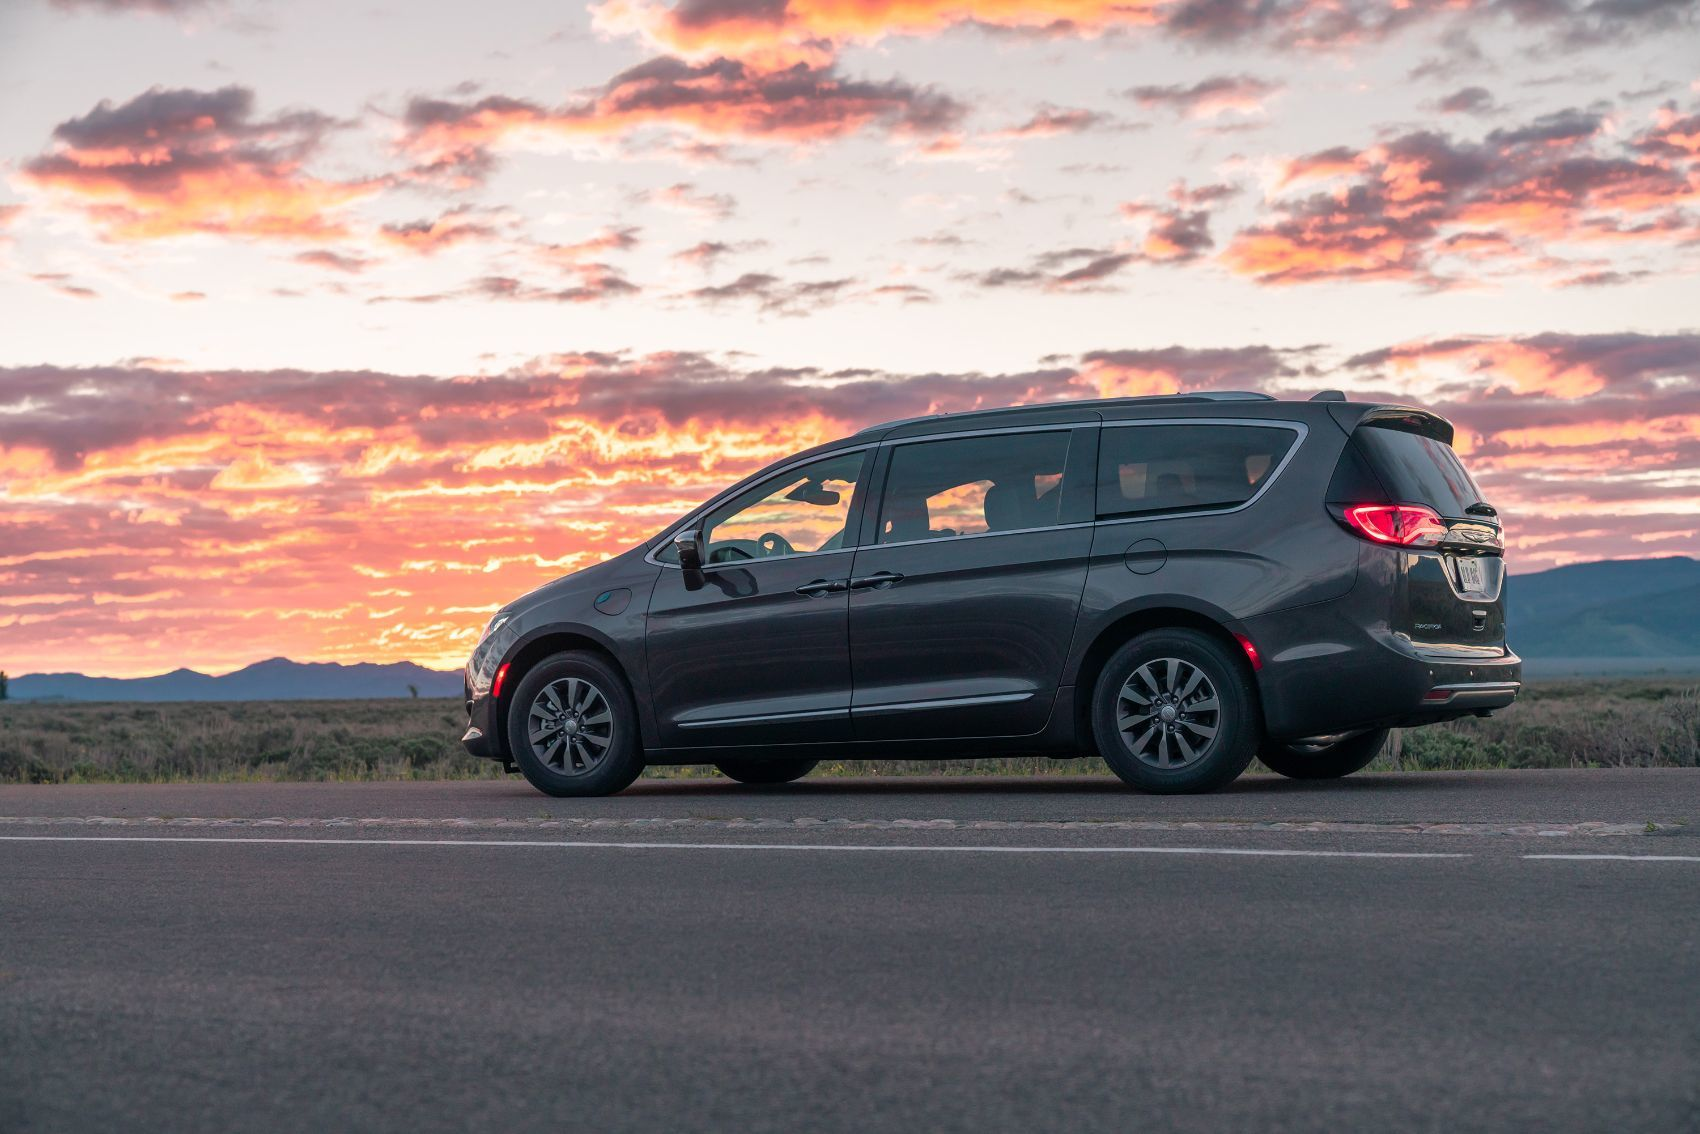 2019 Chrysler Pacifica Hybrid Limited Review: A Fine Fit For Families 15